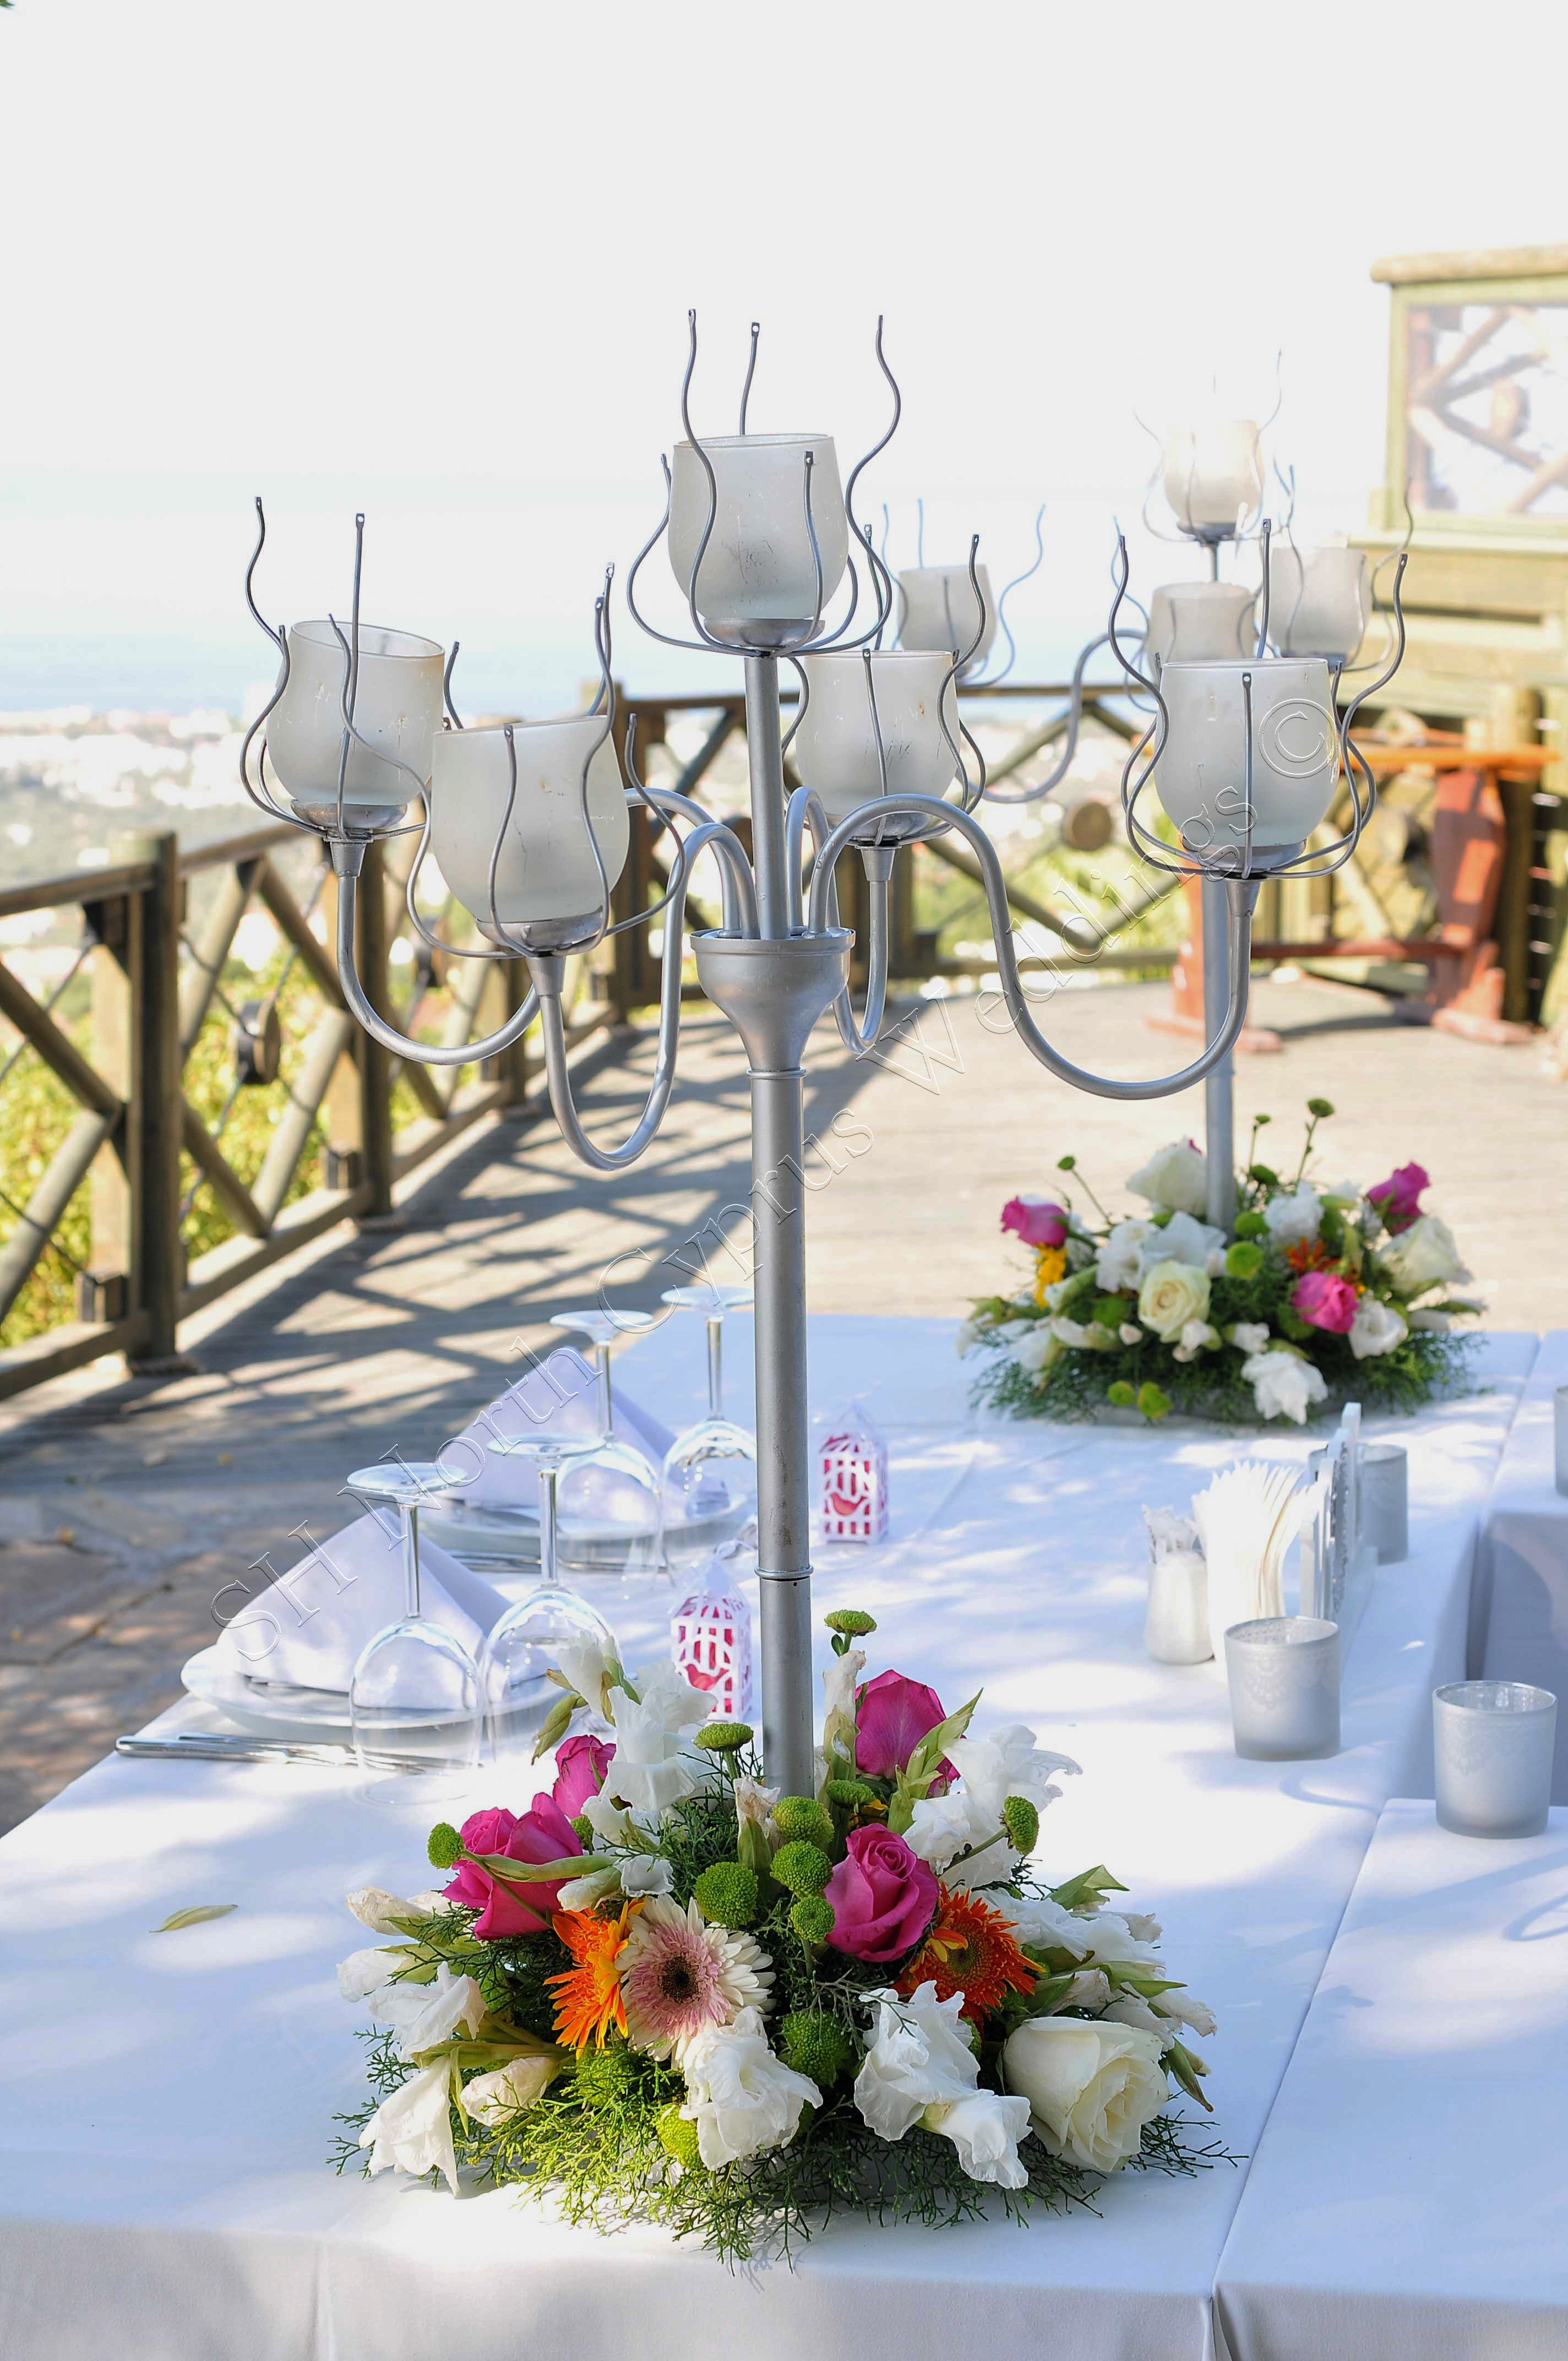 North Cyprus wedding flowers (17)